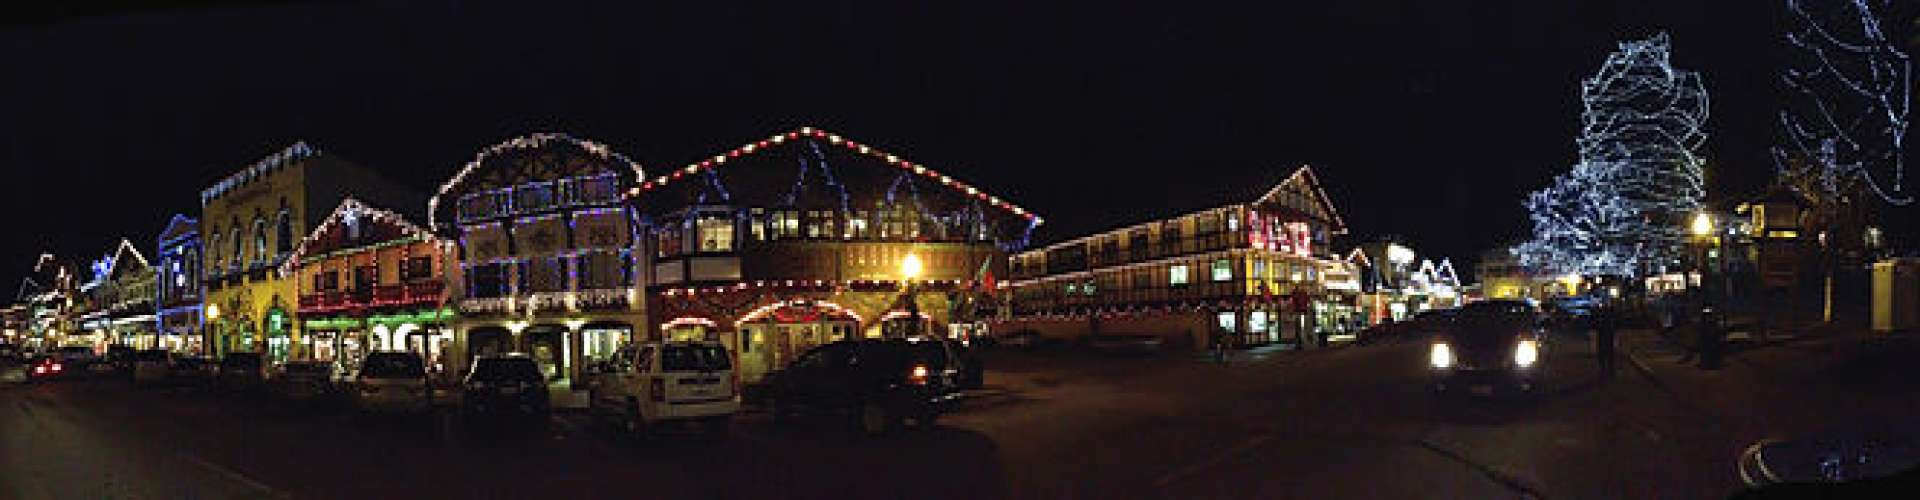 Leavenworth Christmas Lights.What Could Be Better Than The Leavenworth Christmas Lights